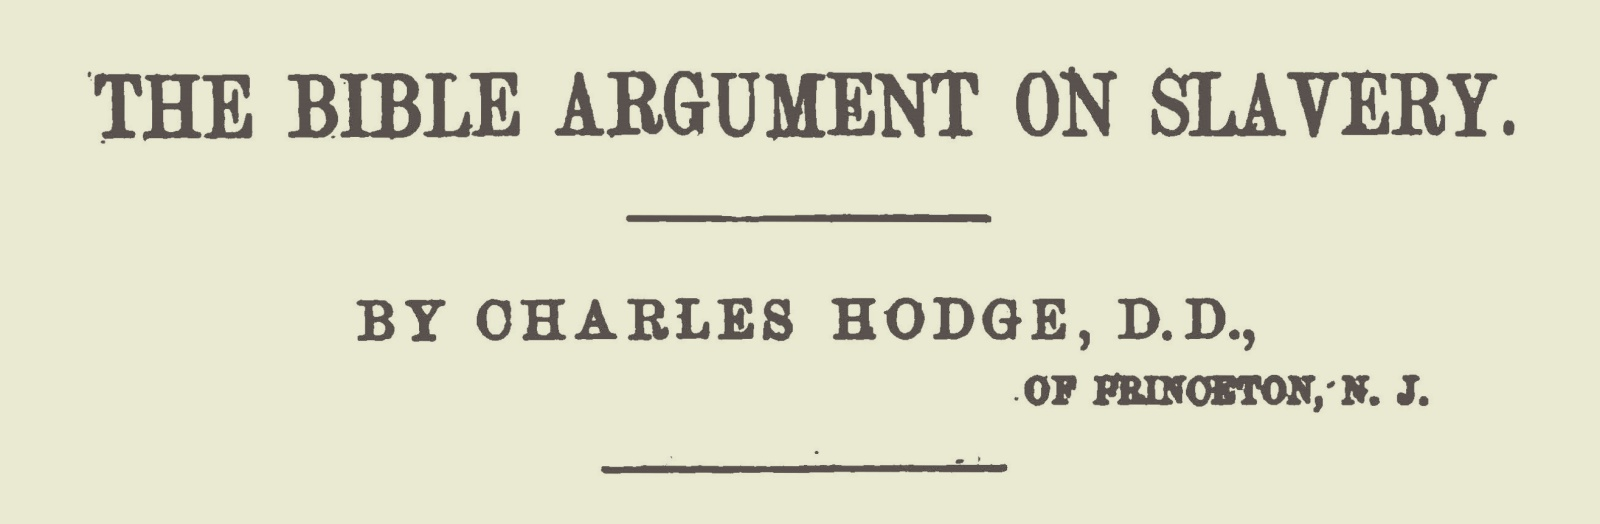 Hodge, Charles, The Bible Argument on Slavery Title Page.jpg